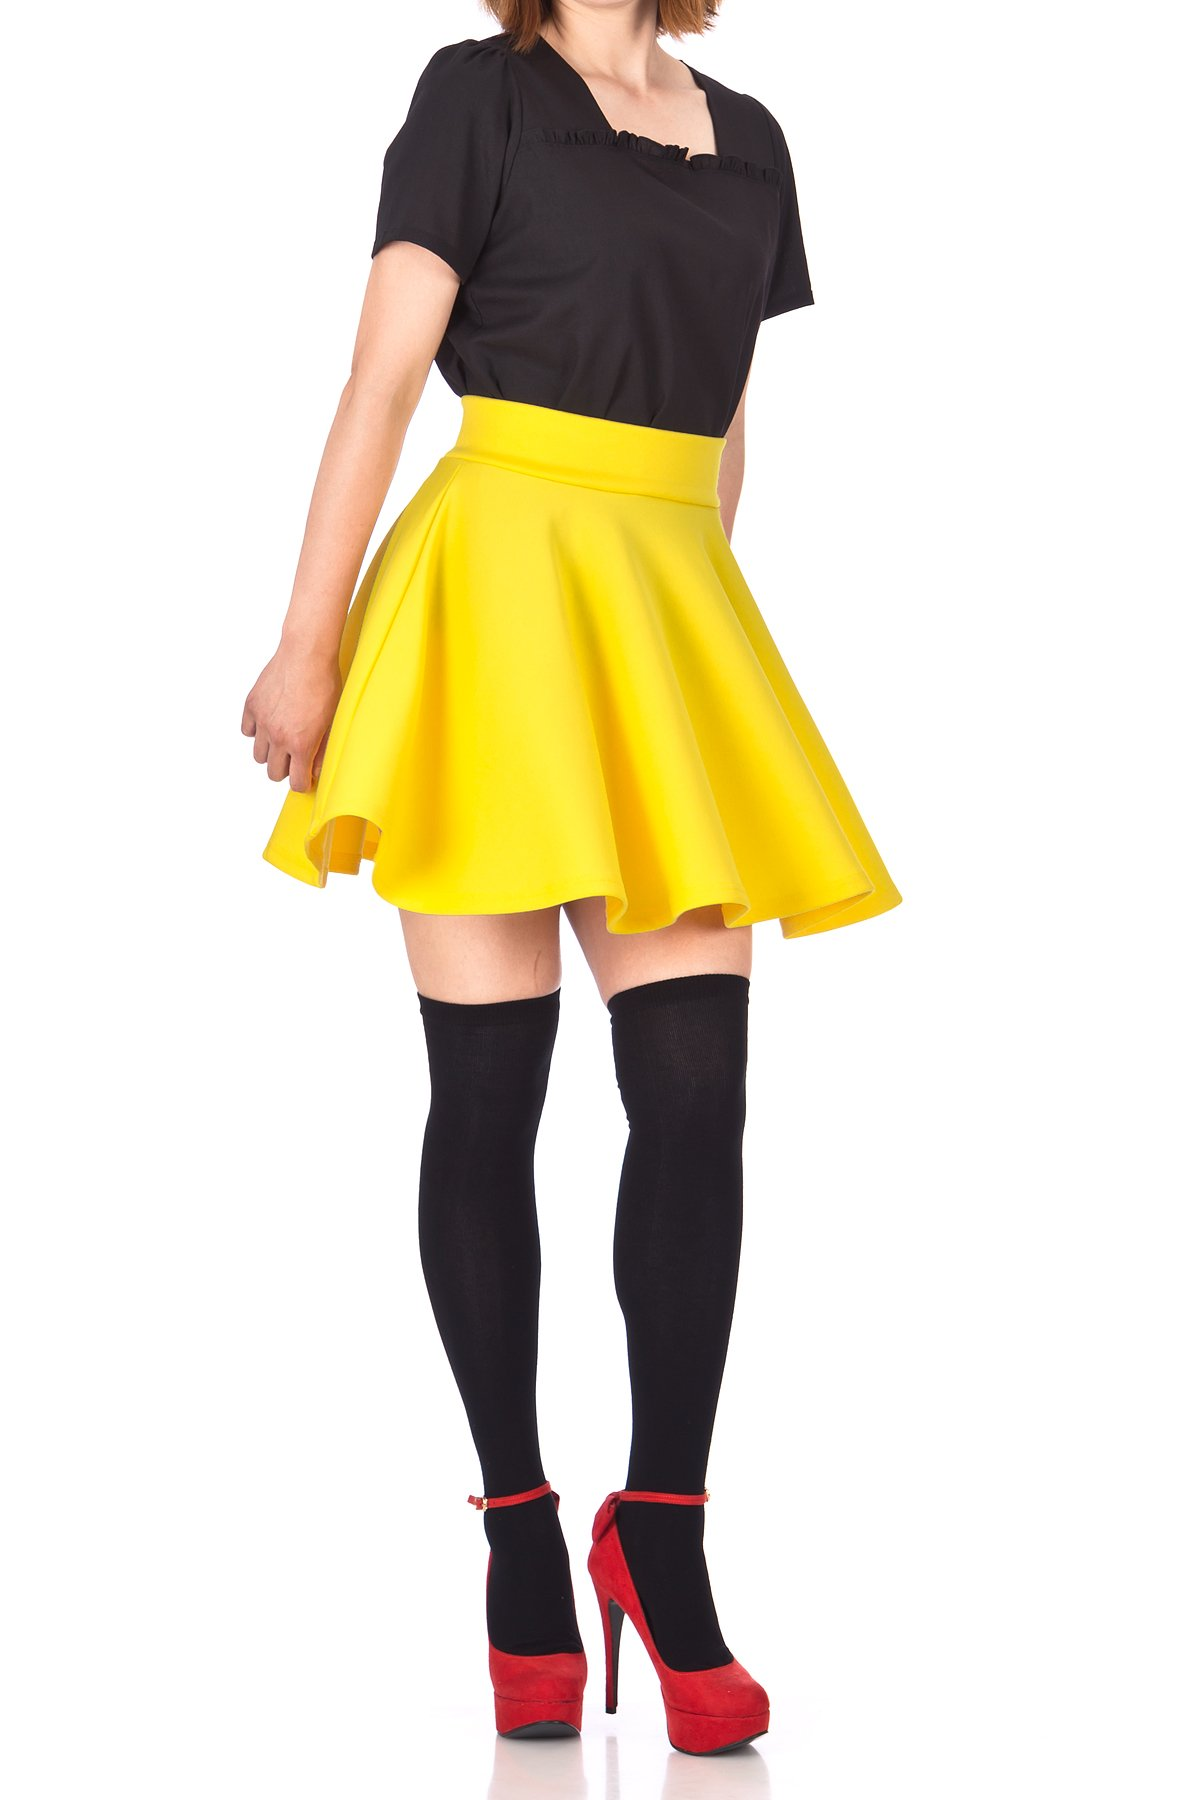 Fancy Retro High Waist A line Flowing Full Flared Swing Circle Skater Short Mini Skirt Yellow 03